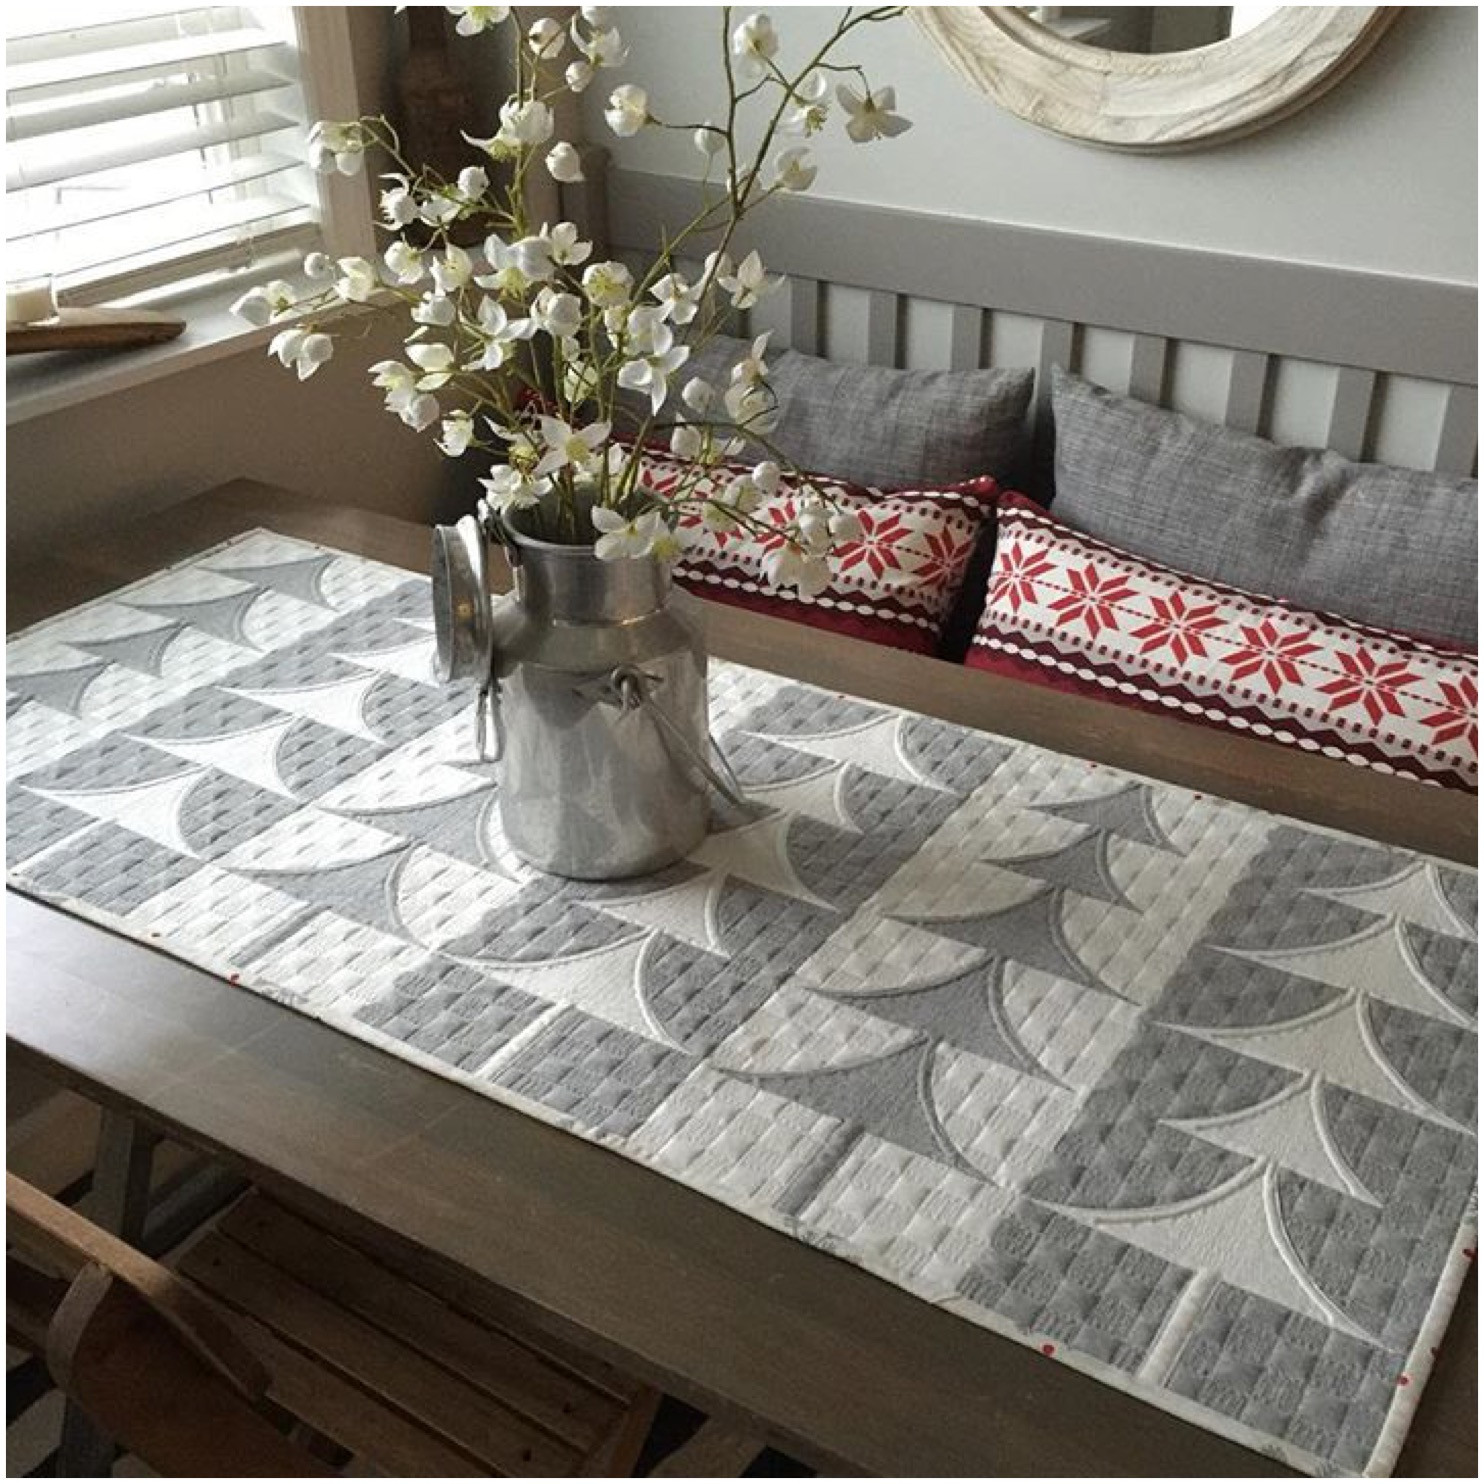 Free Christmas Table Runner Patterns  Sew Kind Wonderful Free Sew Kind of Wonderful Patterns